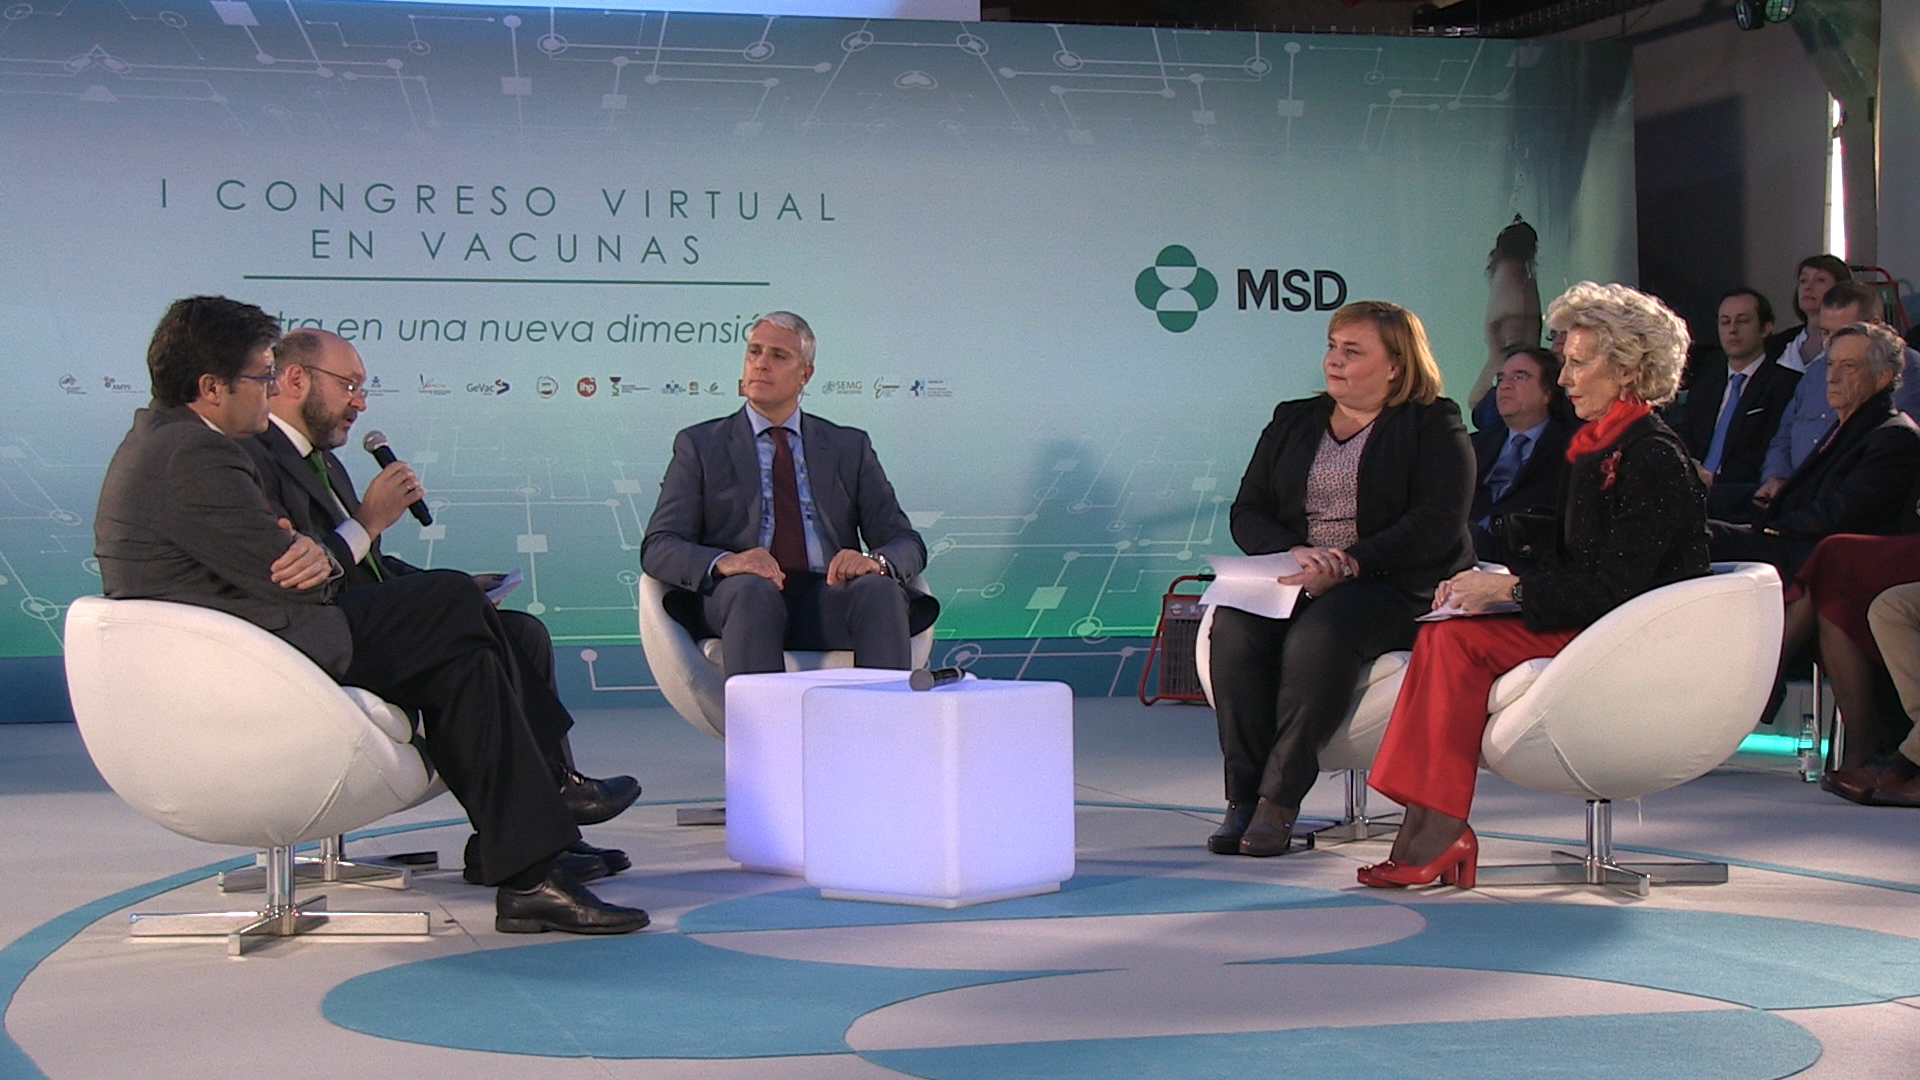 Récord de inscritos en el I Congreso Virtual de Vacunas de MSD